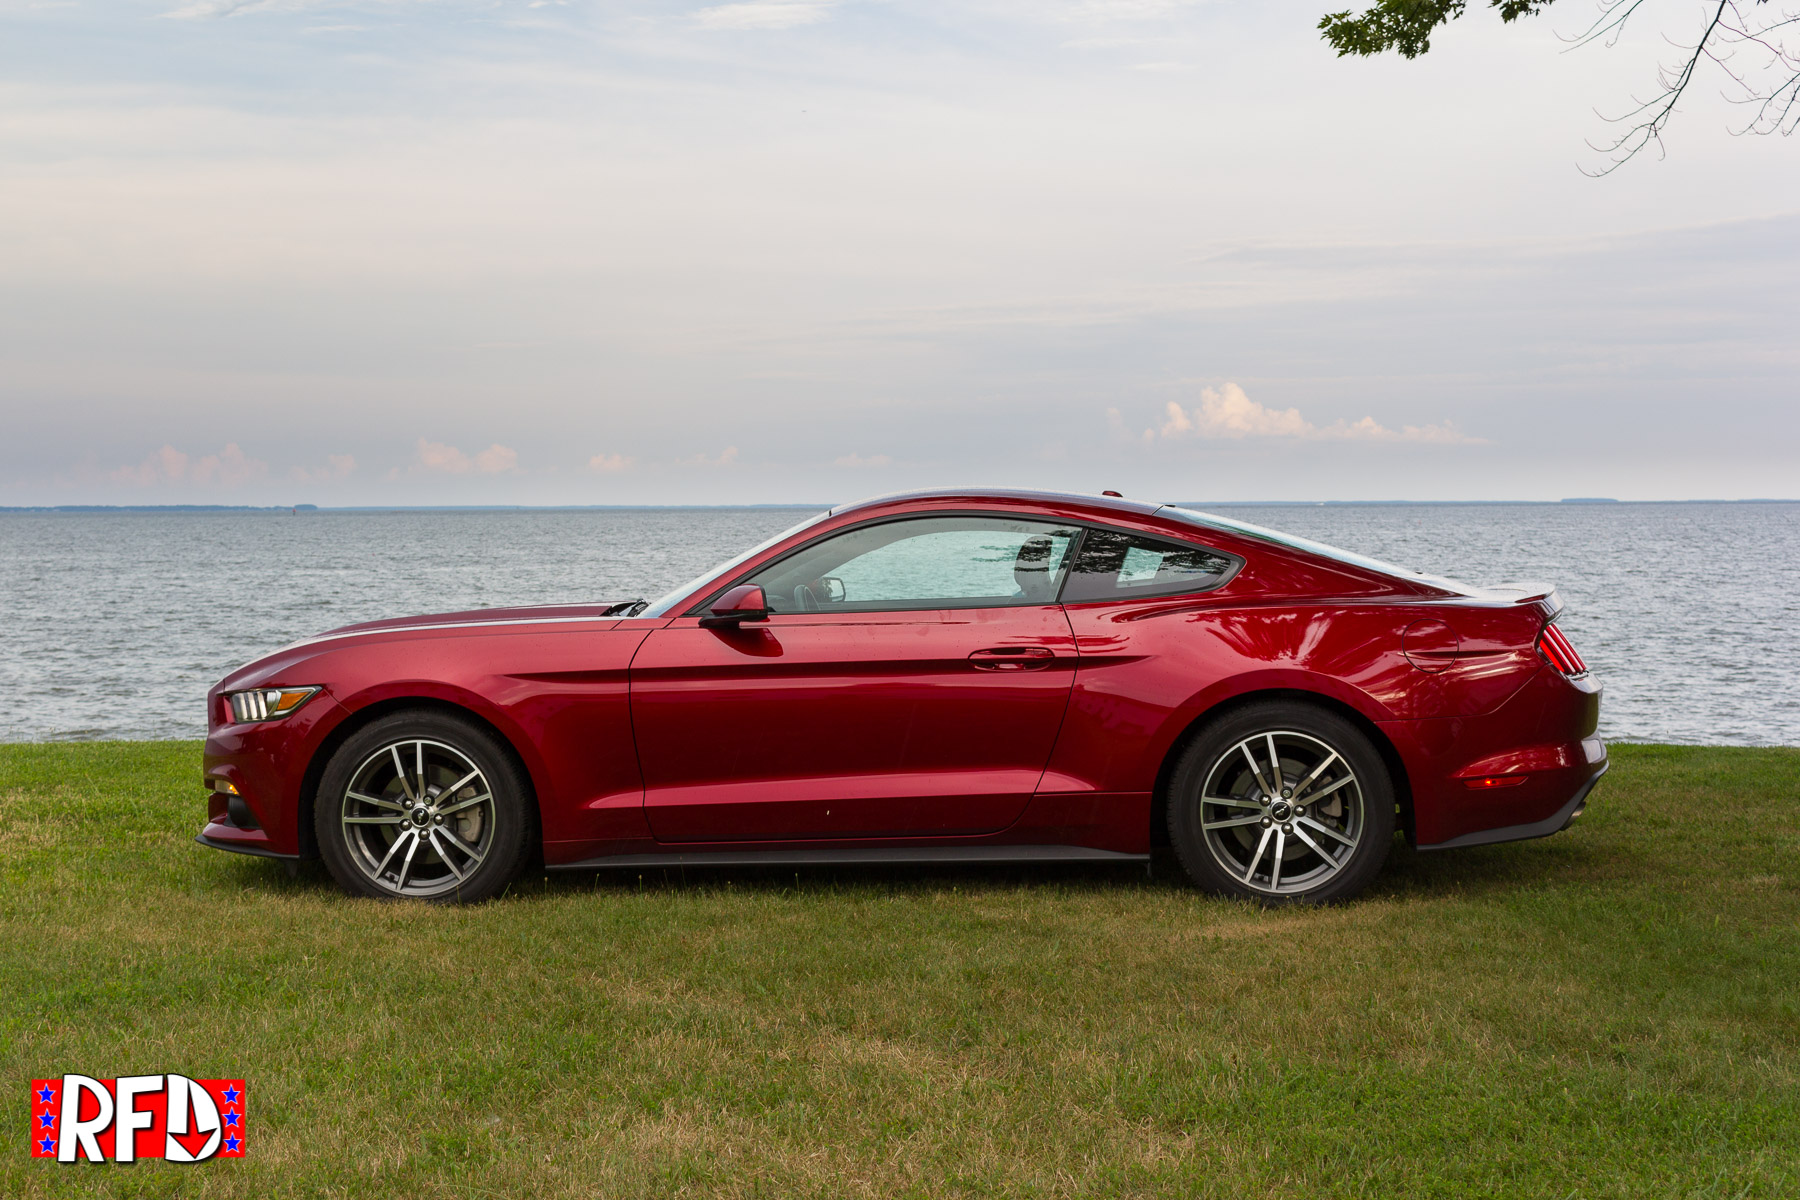 2016 ford mustang ecoboost red img 7342